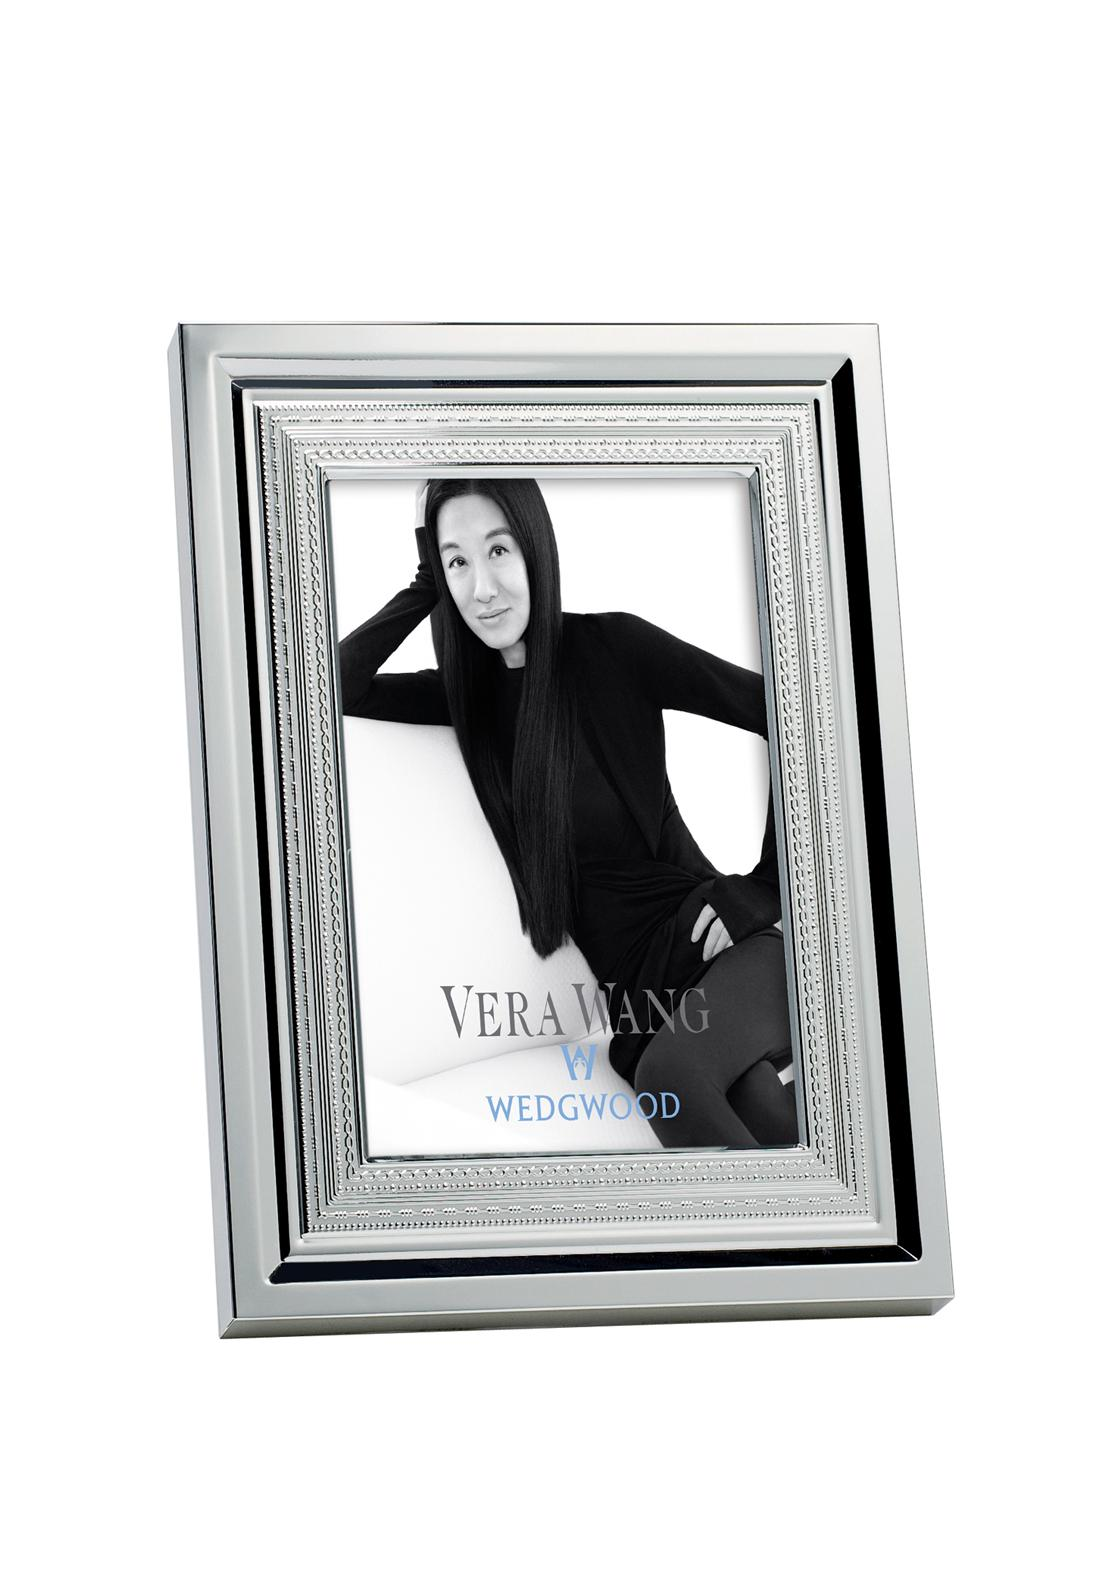 Vera Wang Wedgwood With Love Photo Frame, 4in x 6in